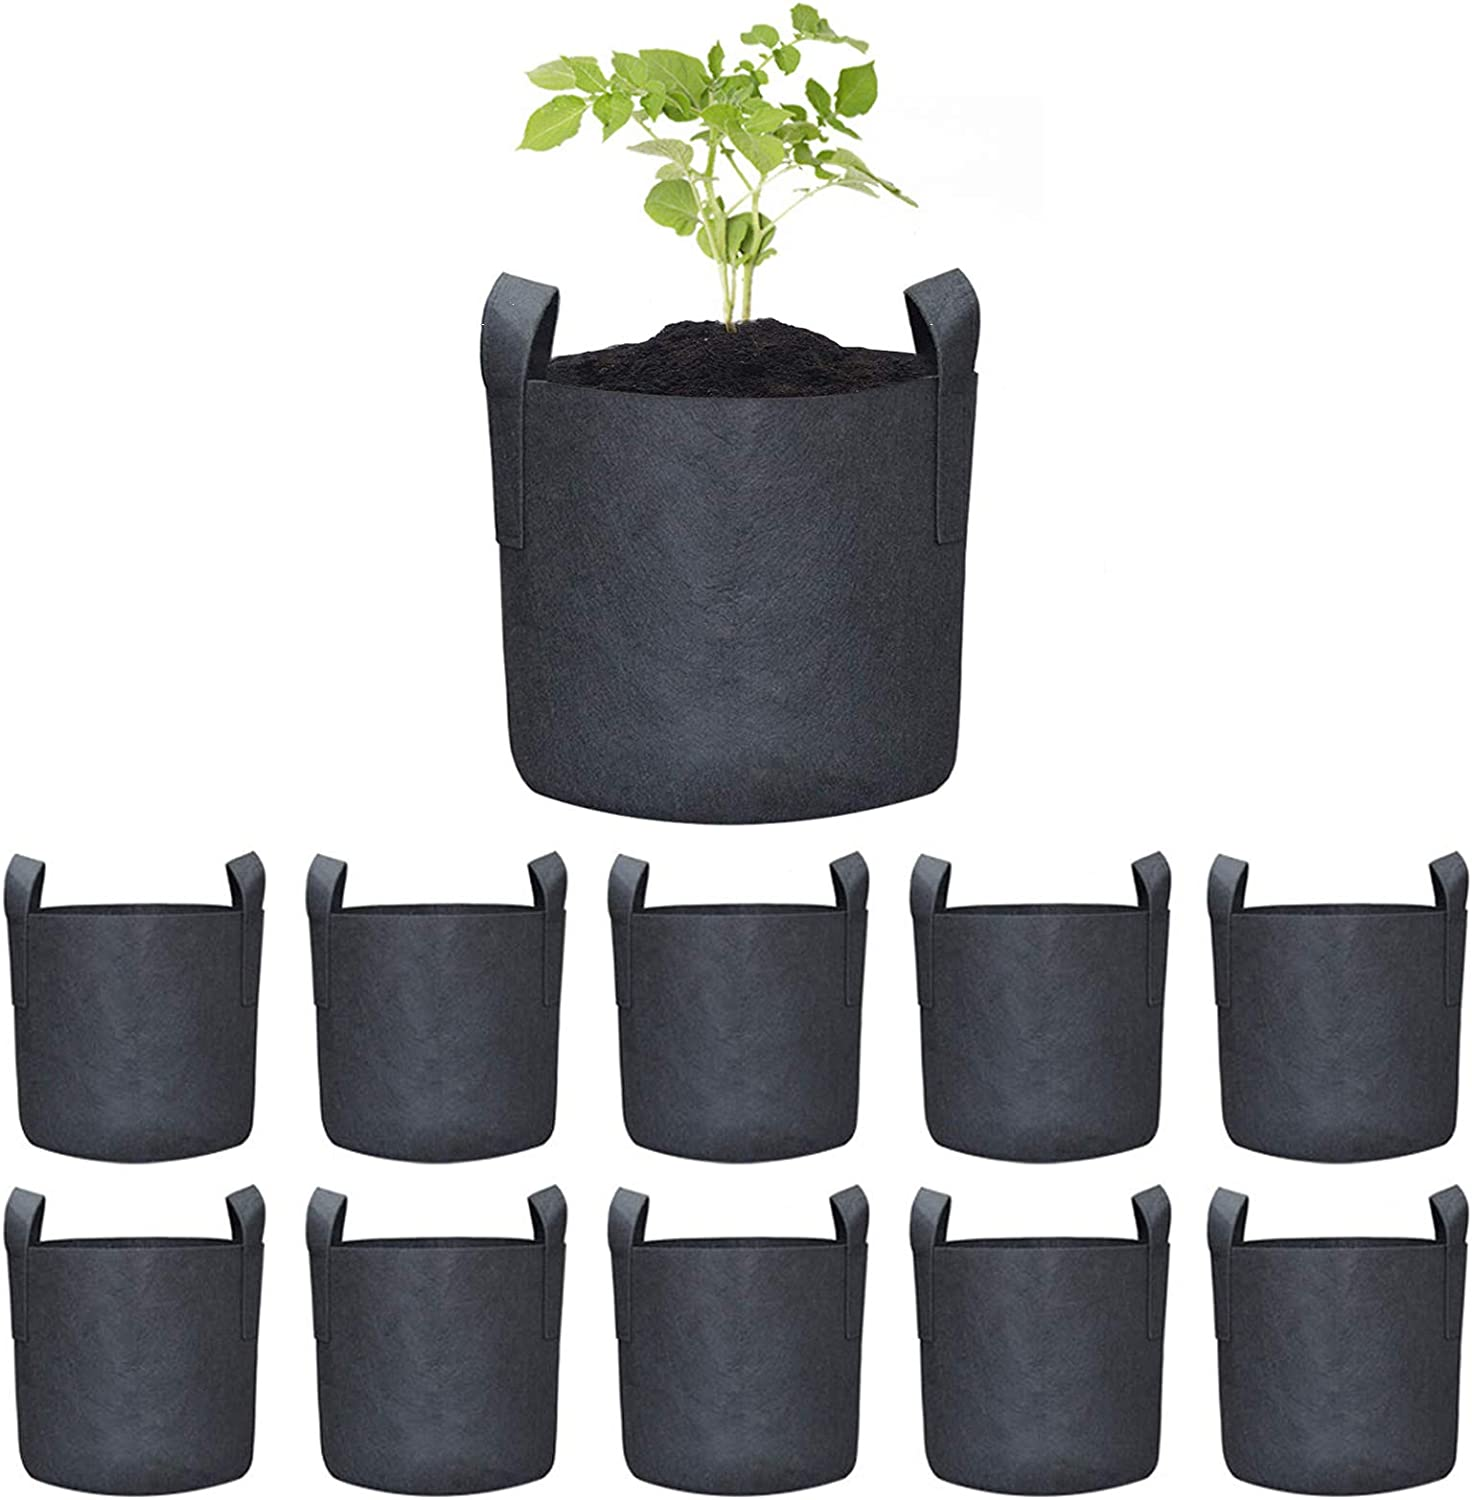 Permotary 10 Pack 1 Gallon Grow Bags for Plant Flower Vegetable Fruit Seedling Grow Bags,Thichkened Non-Woven Aeration Fabric Pots Container with Handles,Black